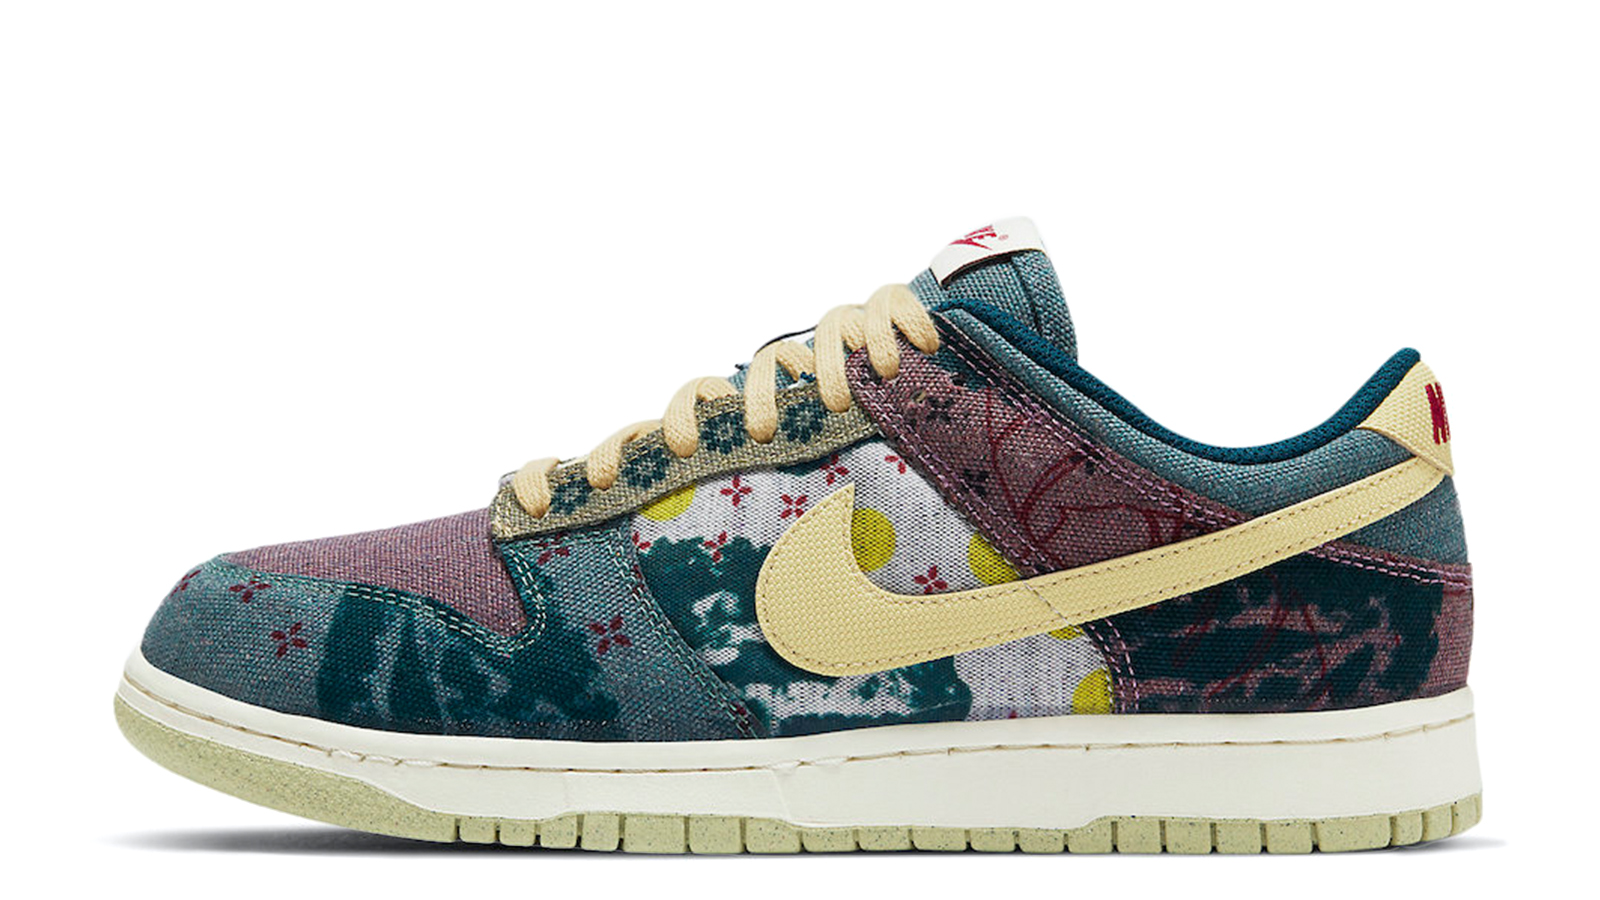 Nike Dunk Low SP Lemon Wash CZ9747-900